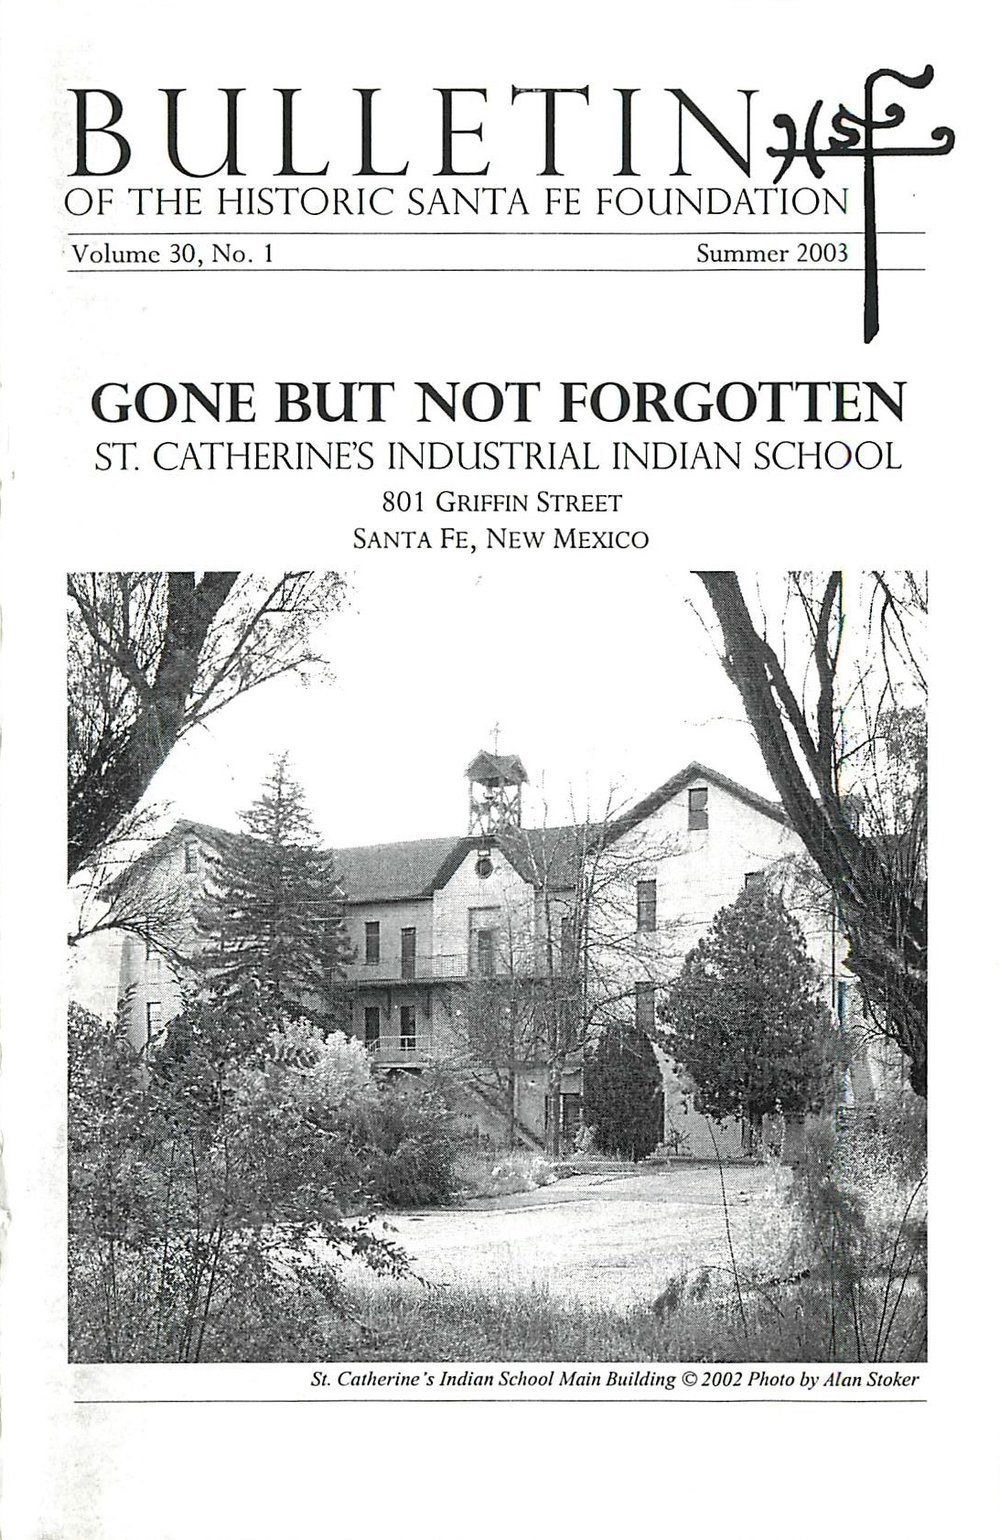 2003 HSFF Bulletin Vol.30 No.1 Cover